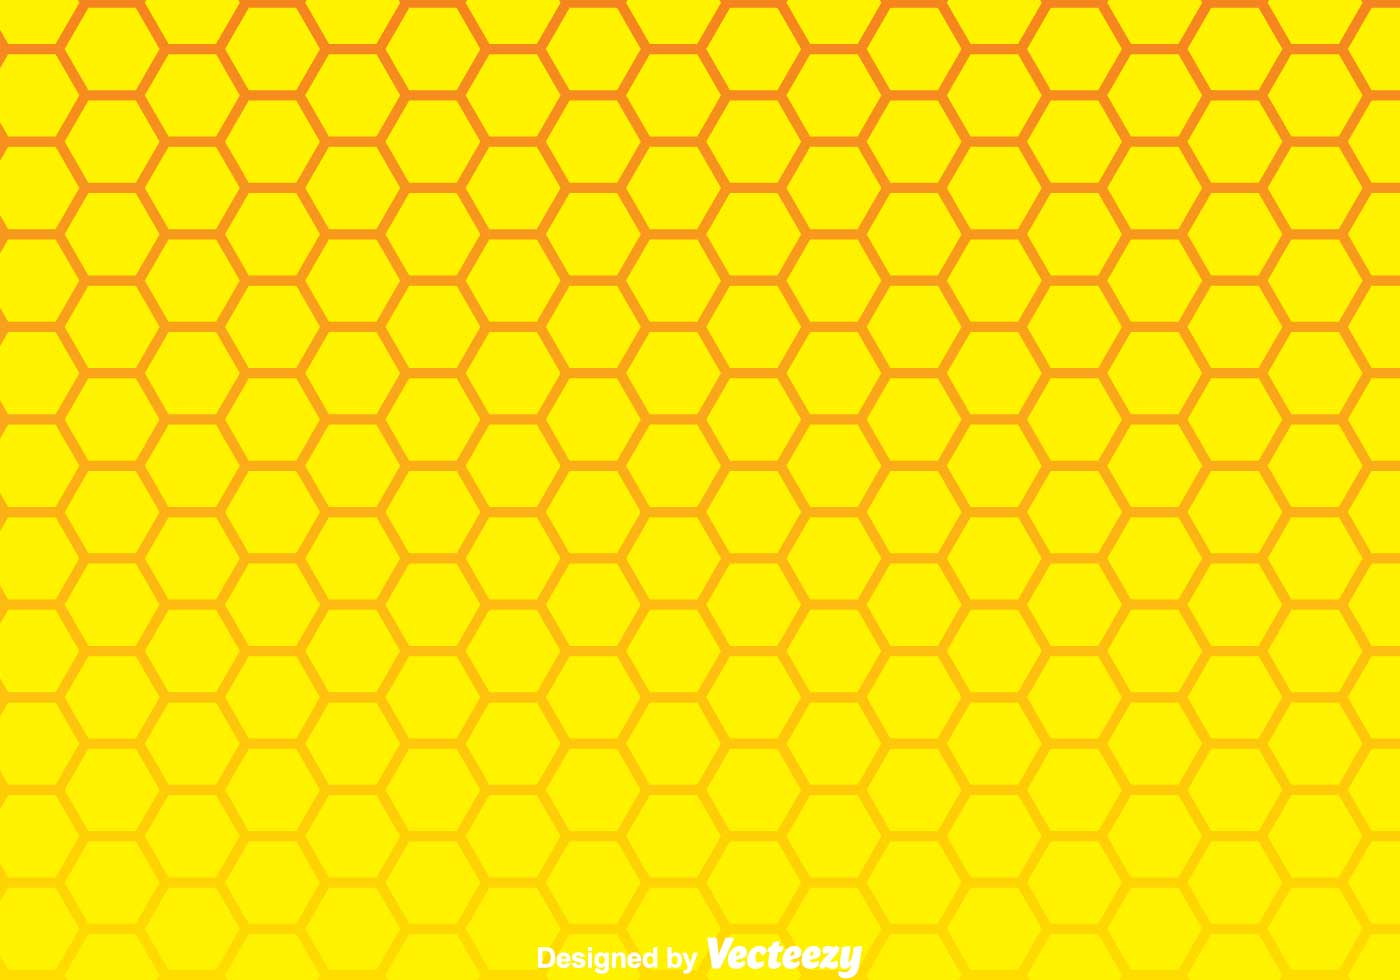 Yellow Honeycomb Wallpaper by coolfunawesometime | Society6 |Yellow Honeycomb Wallpaper